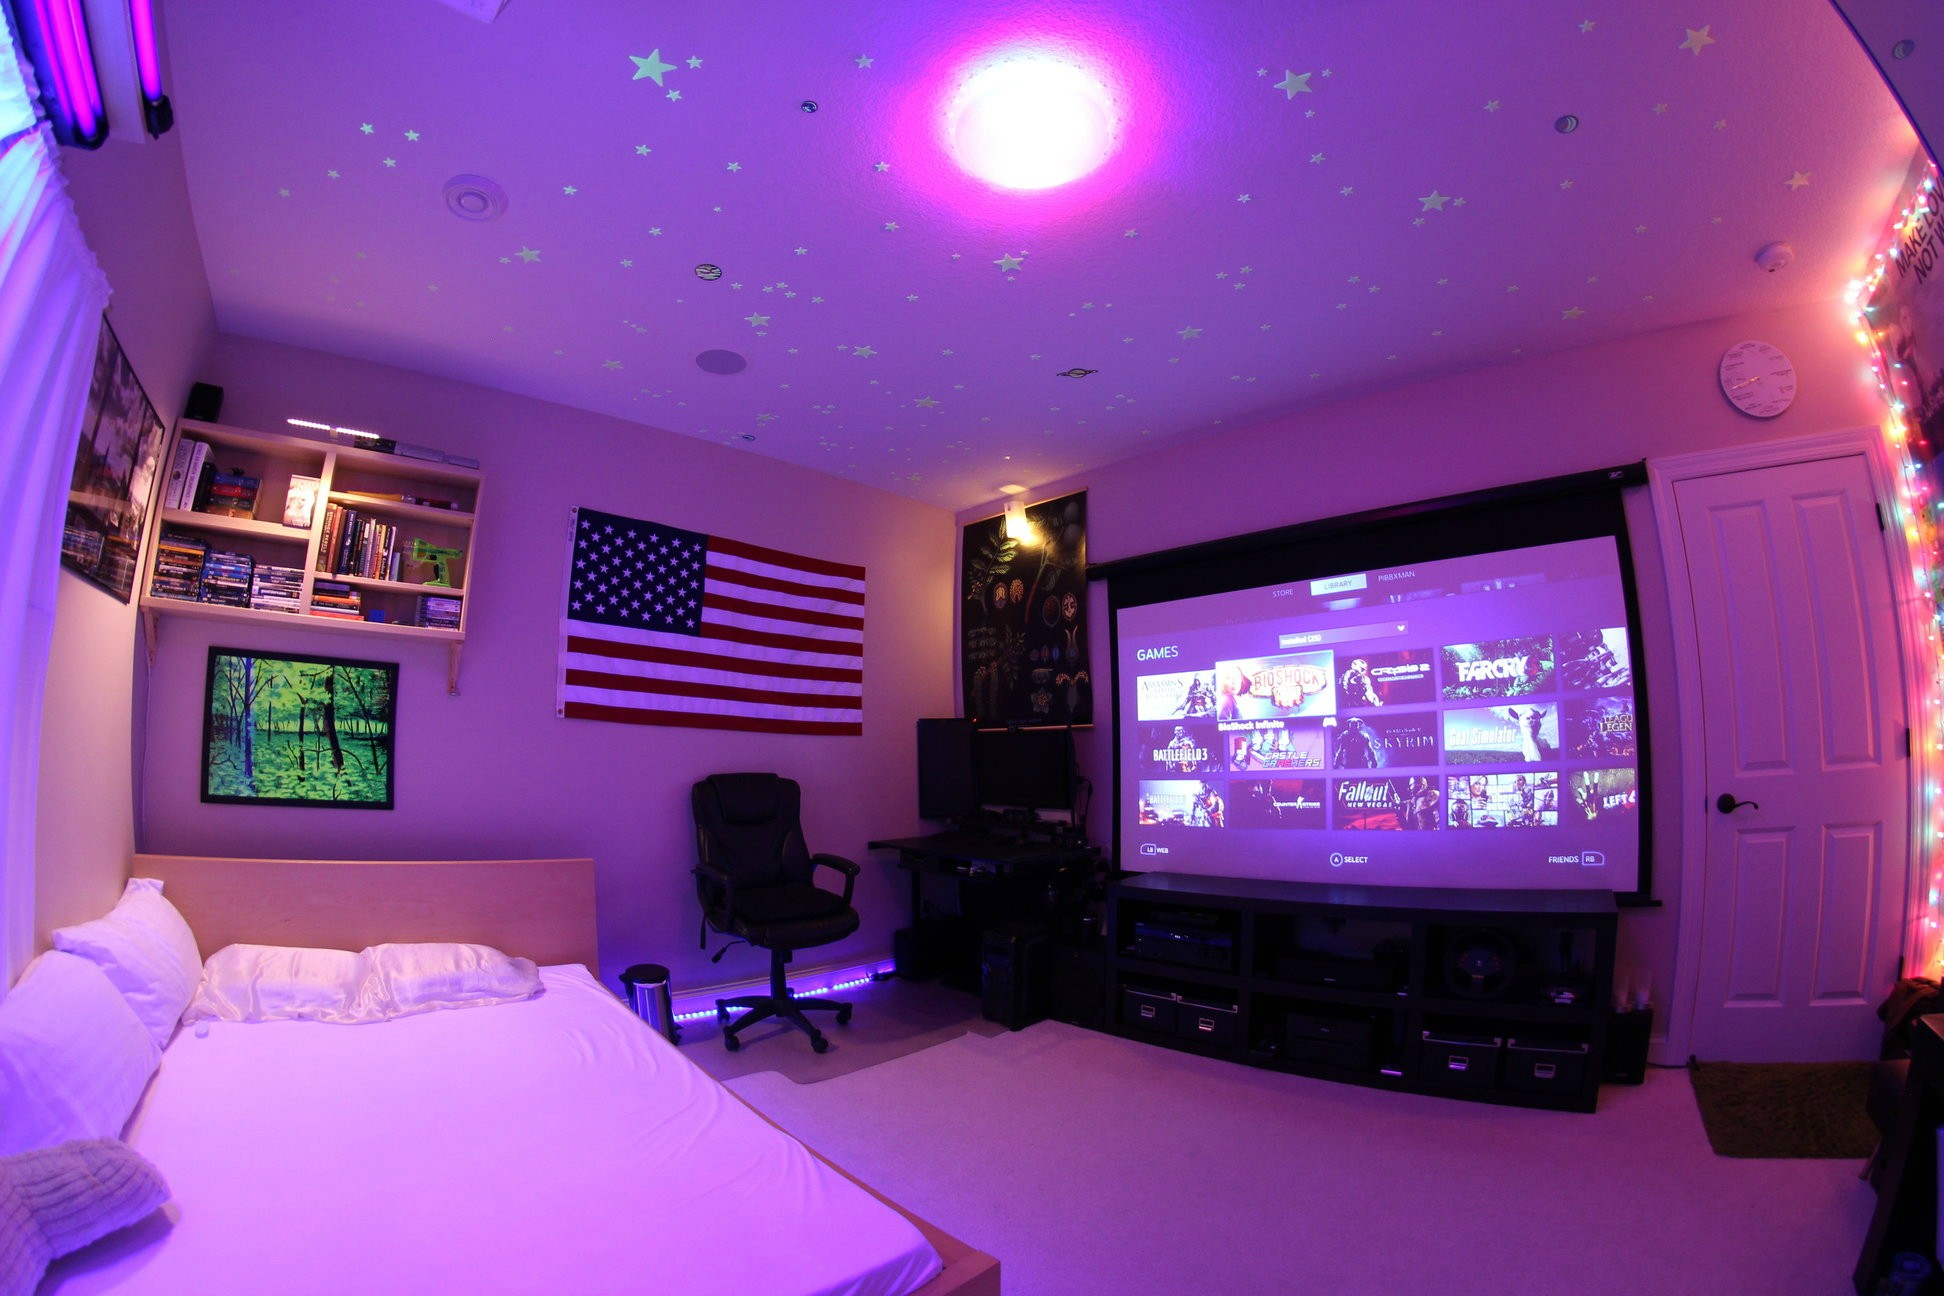 Bedroom Designs Video 15 awesome video game room design ideas you must see - style